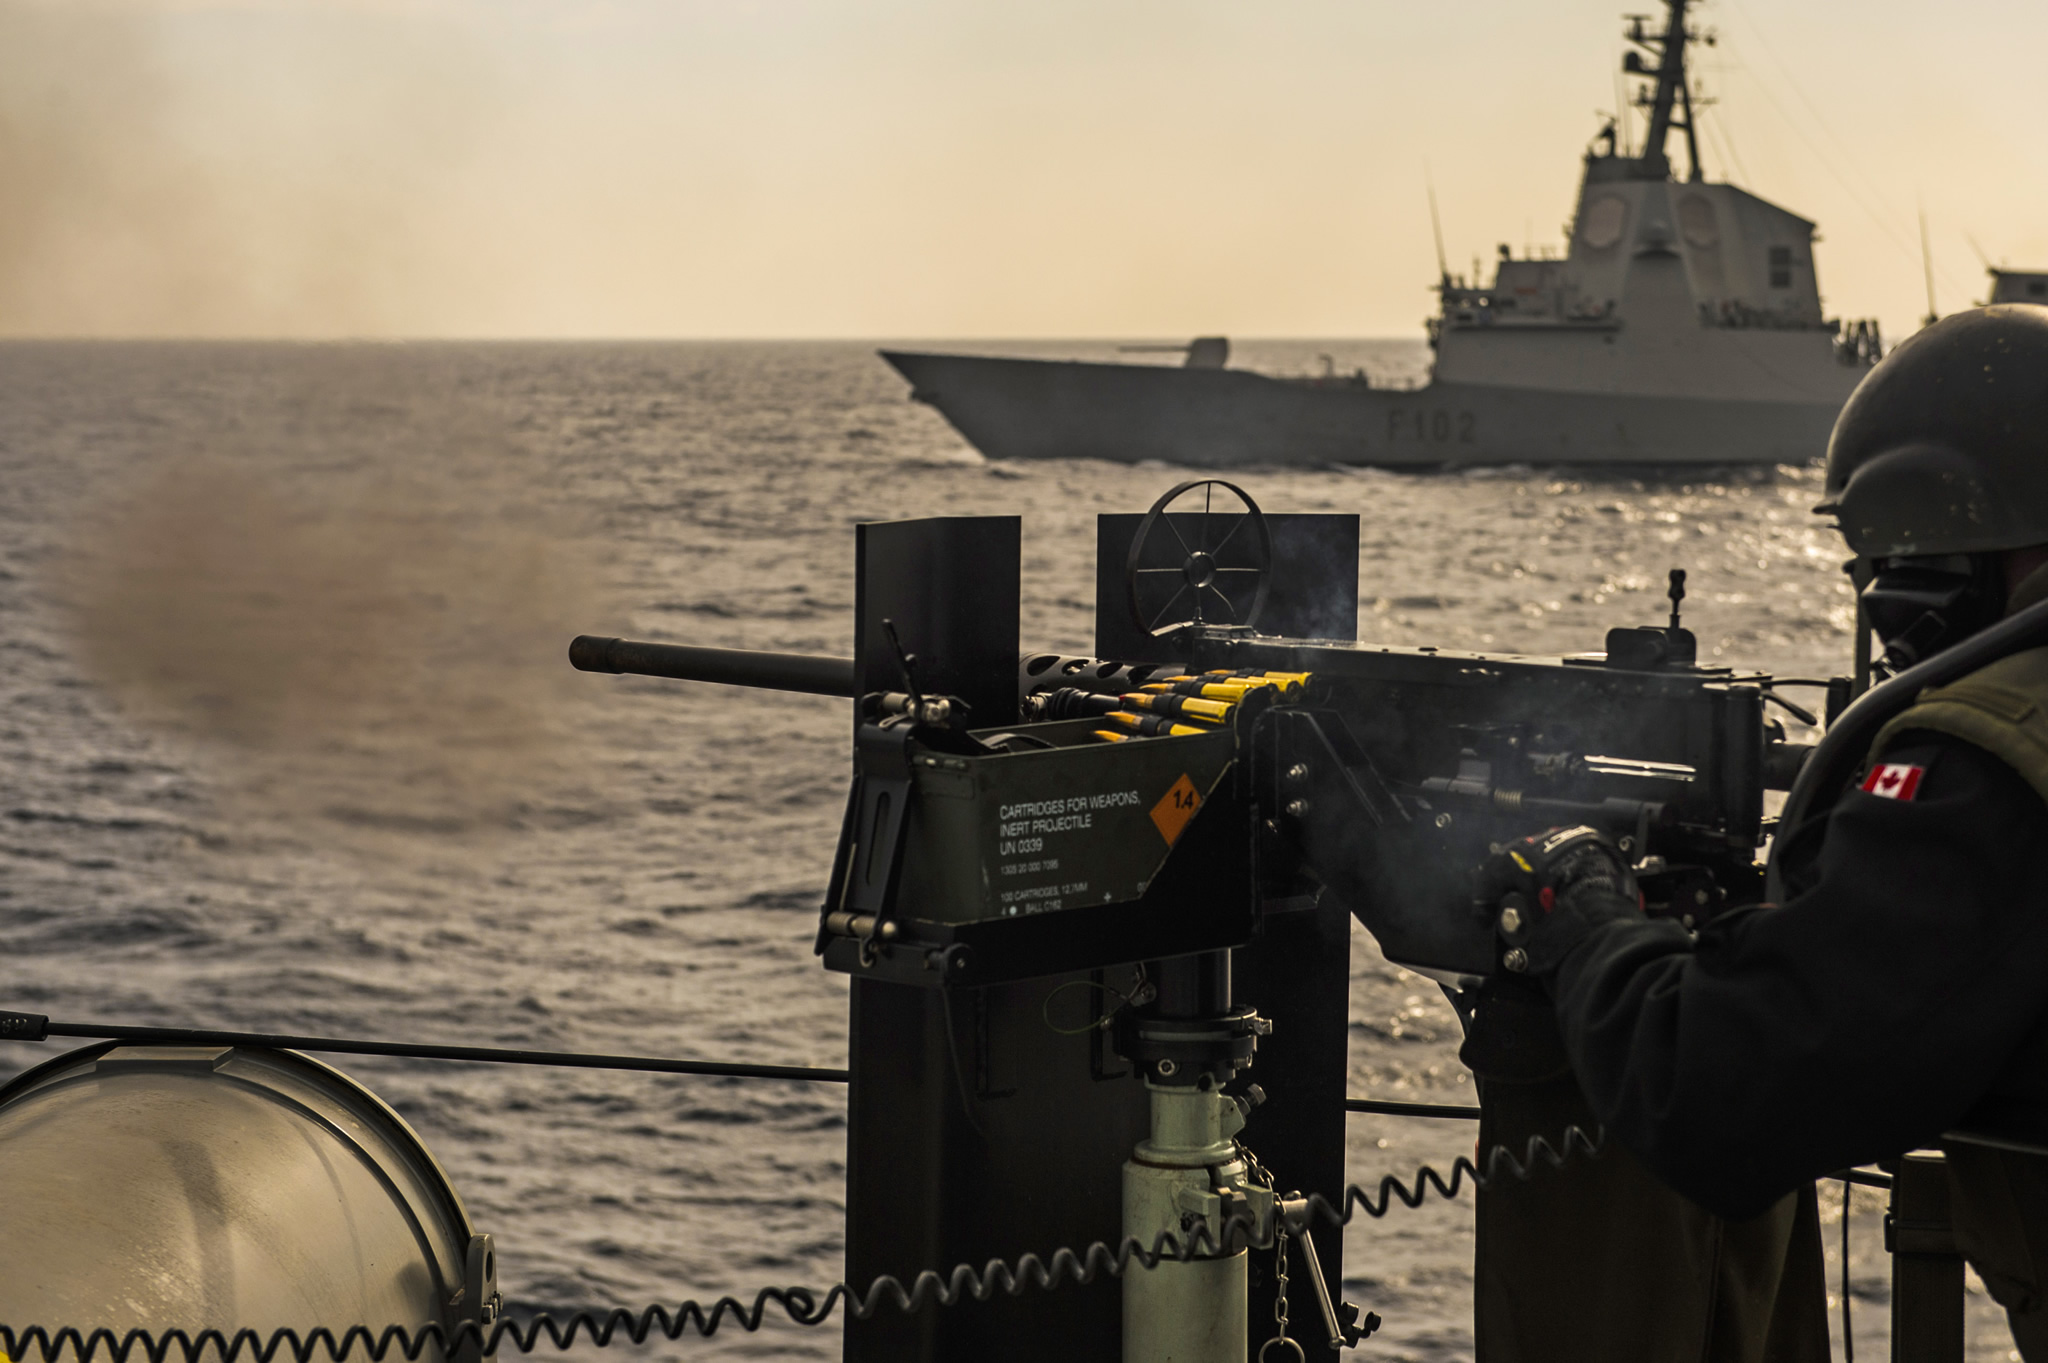 Mediterranean Sea. March 1, 2017 – A .50 Calibre Heavy Machine Gun operator onboard Her Majesty's Canadian Ship St. John's fires warning shots ahead of the Spanish Frigate JUAN DE BORBON during an exercise as they transit the Mediterranean Sea, during Operation REASSURANCE. (Photo: Leading Seaman Ogle Henry, Formation Imaging Services)